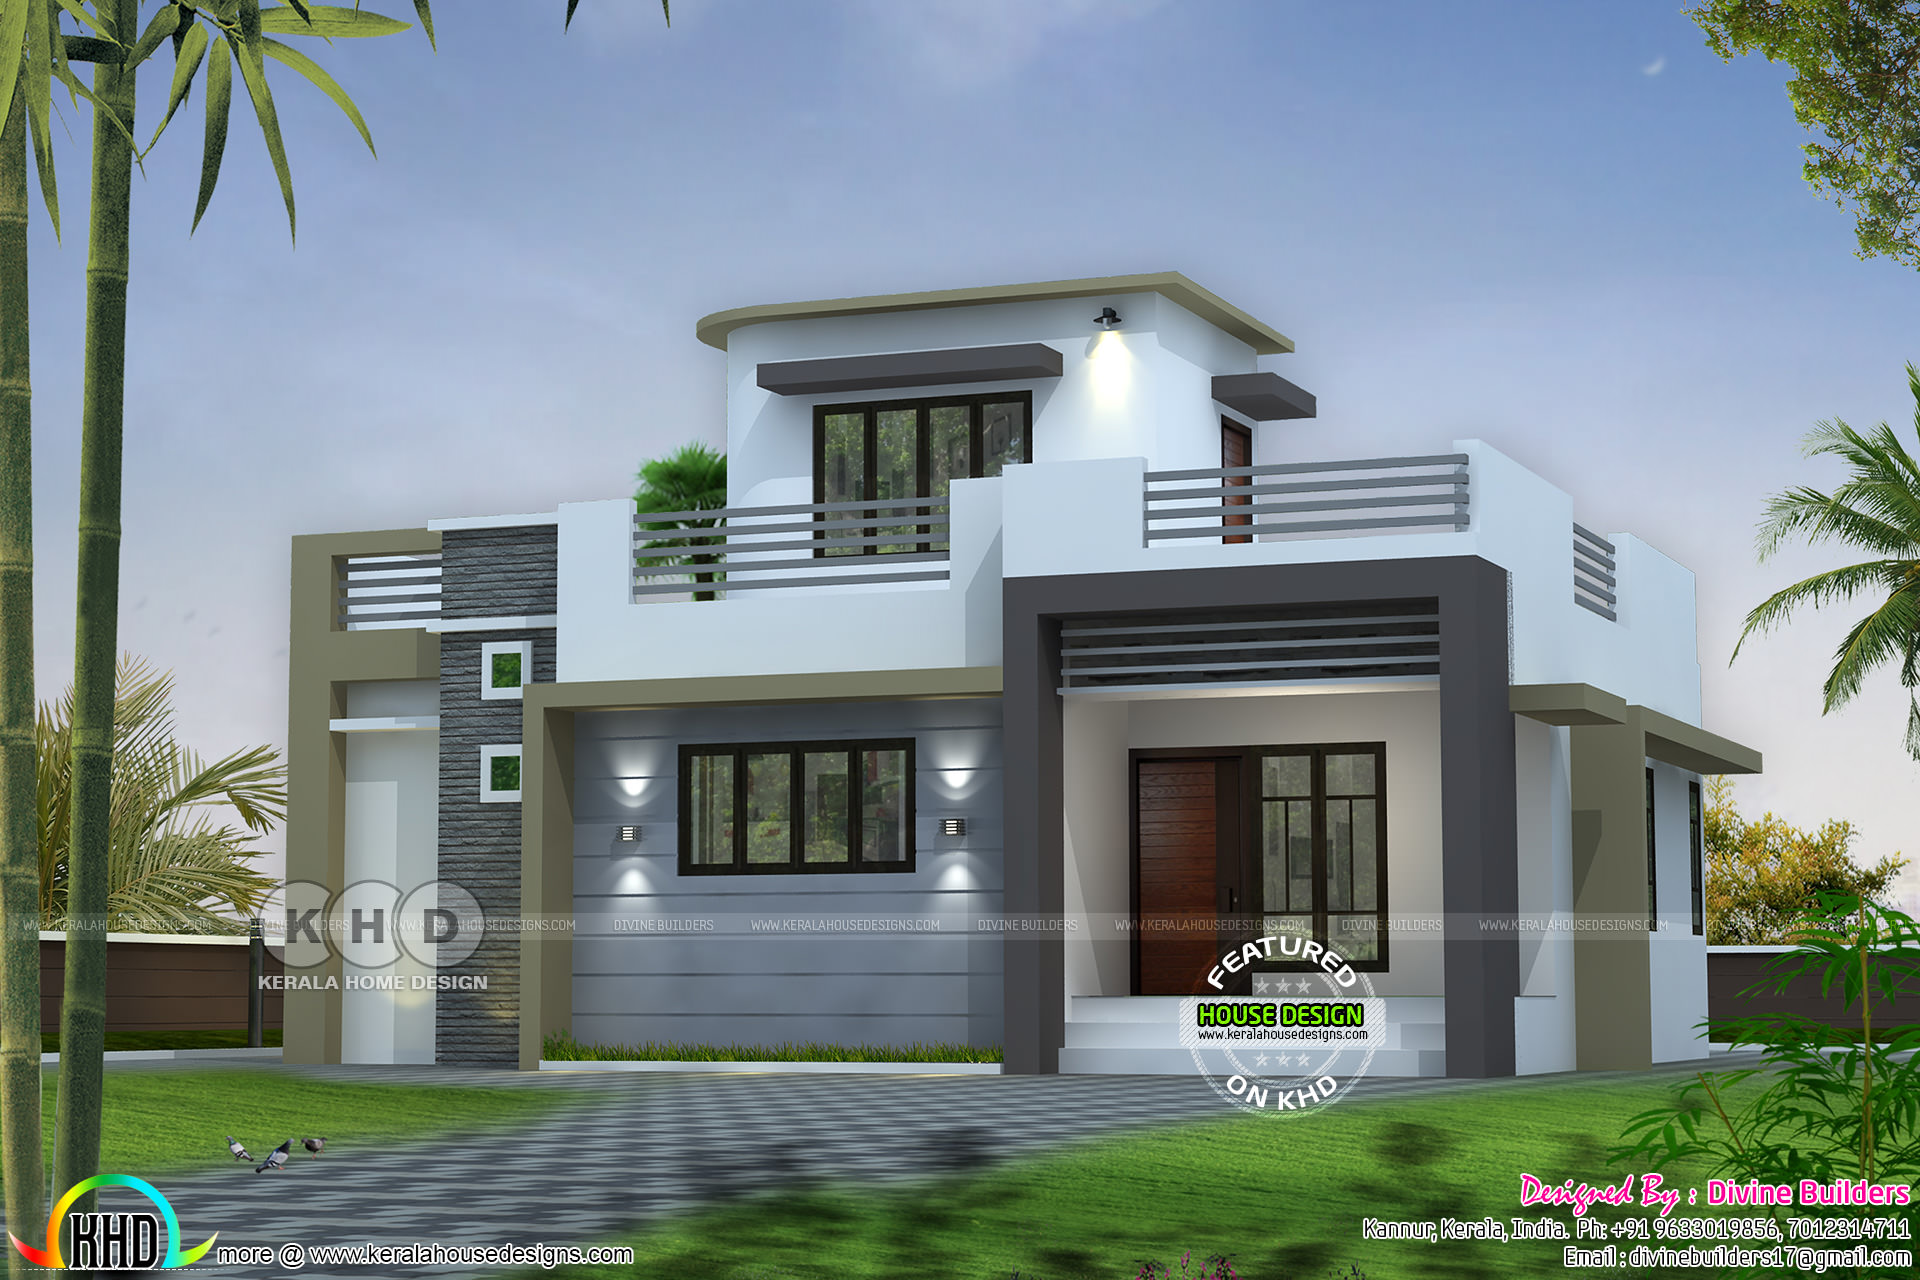 20 Lakh Home In Surat 20 Lakhs Cost Estimated 1227 Square Feet House Kerala